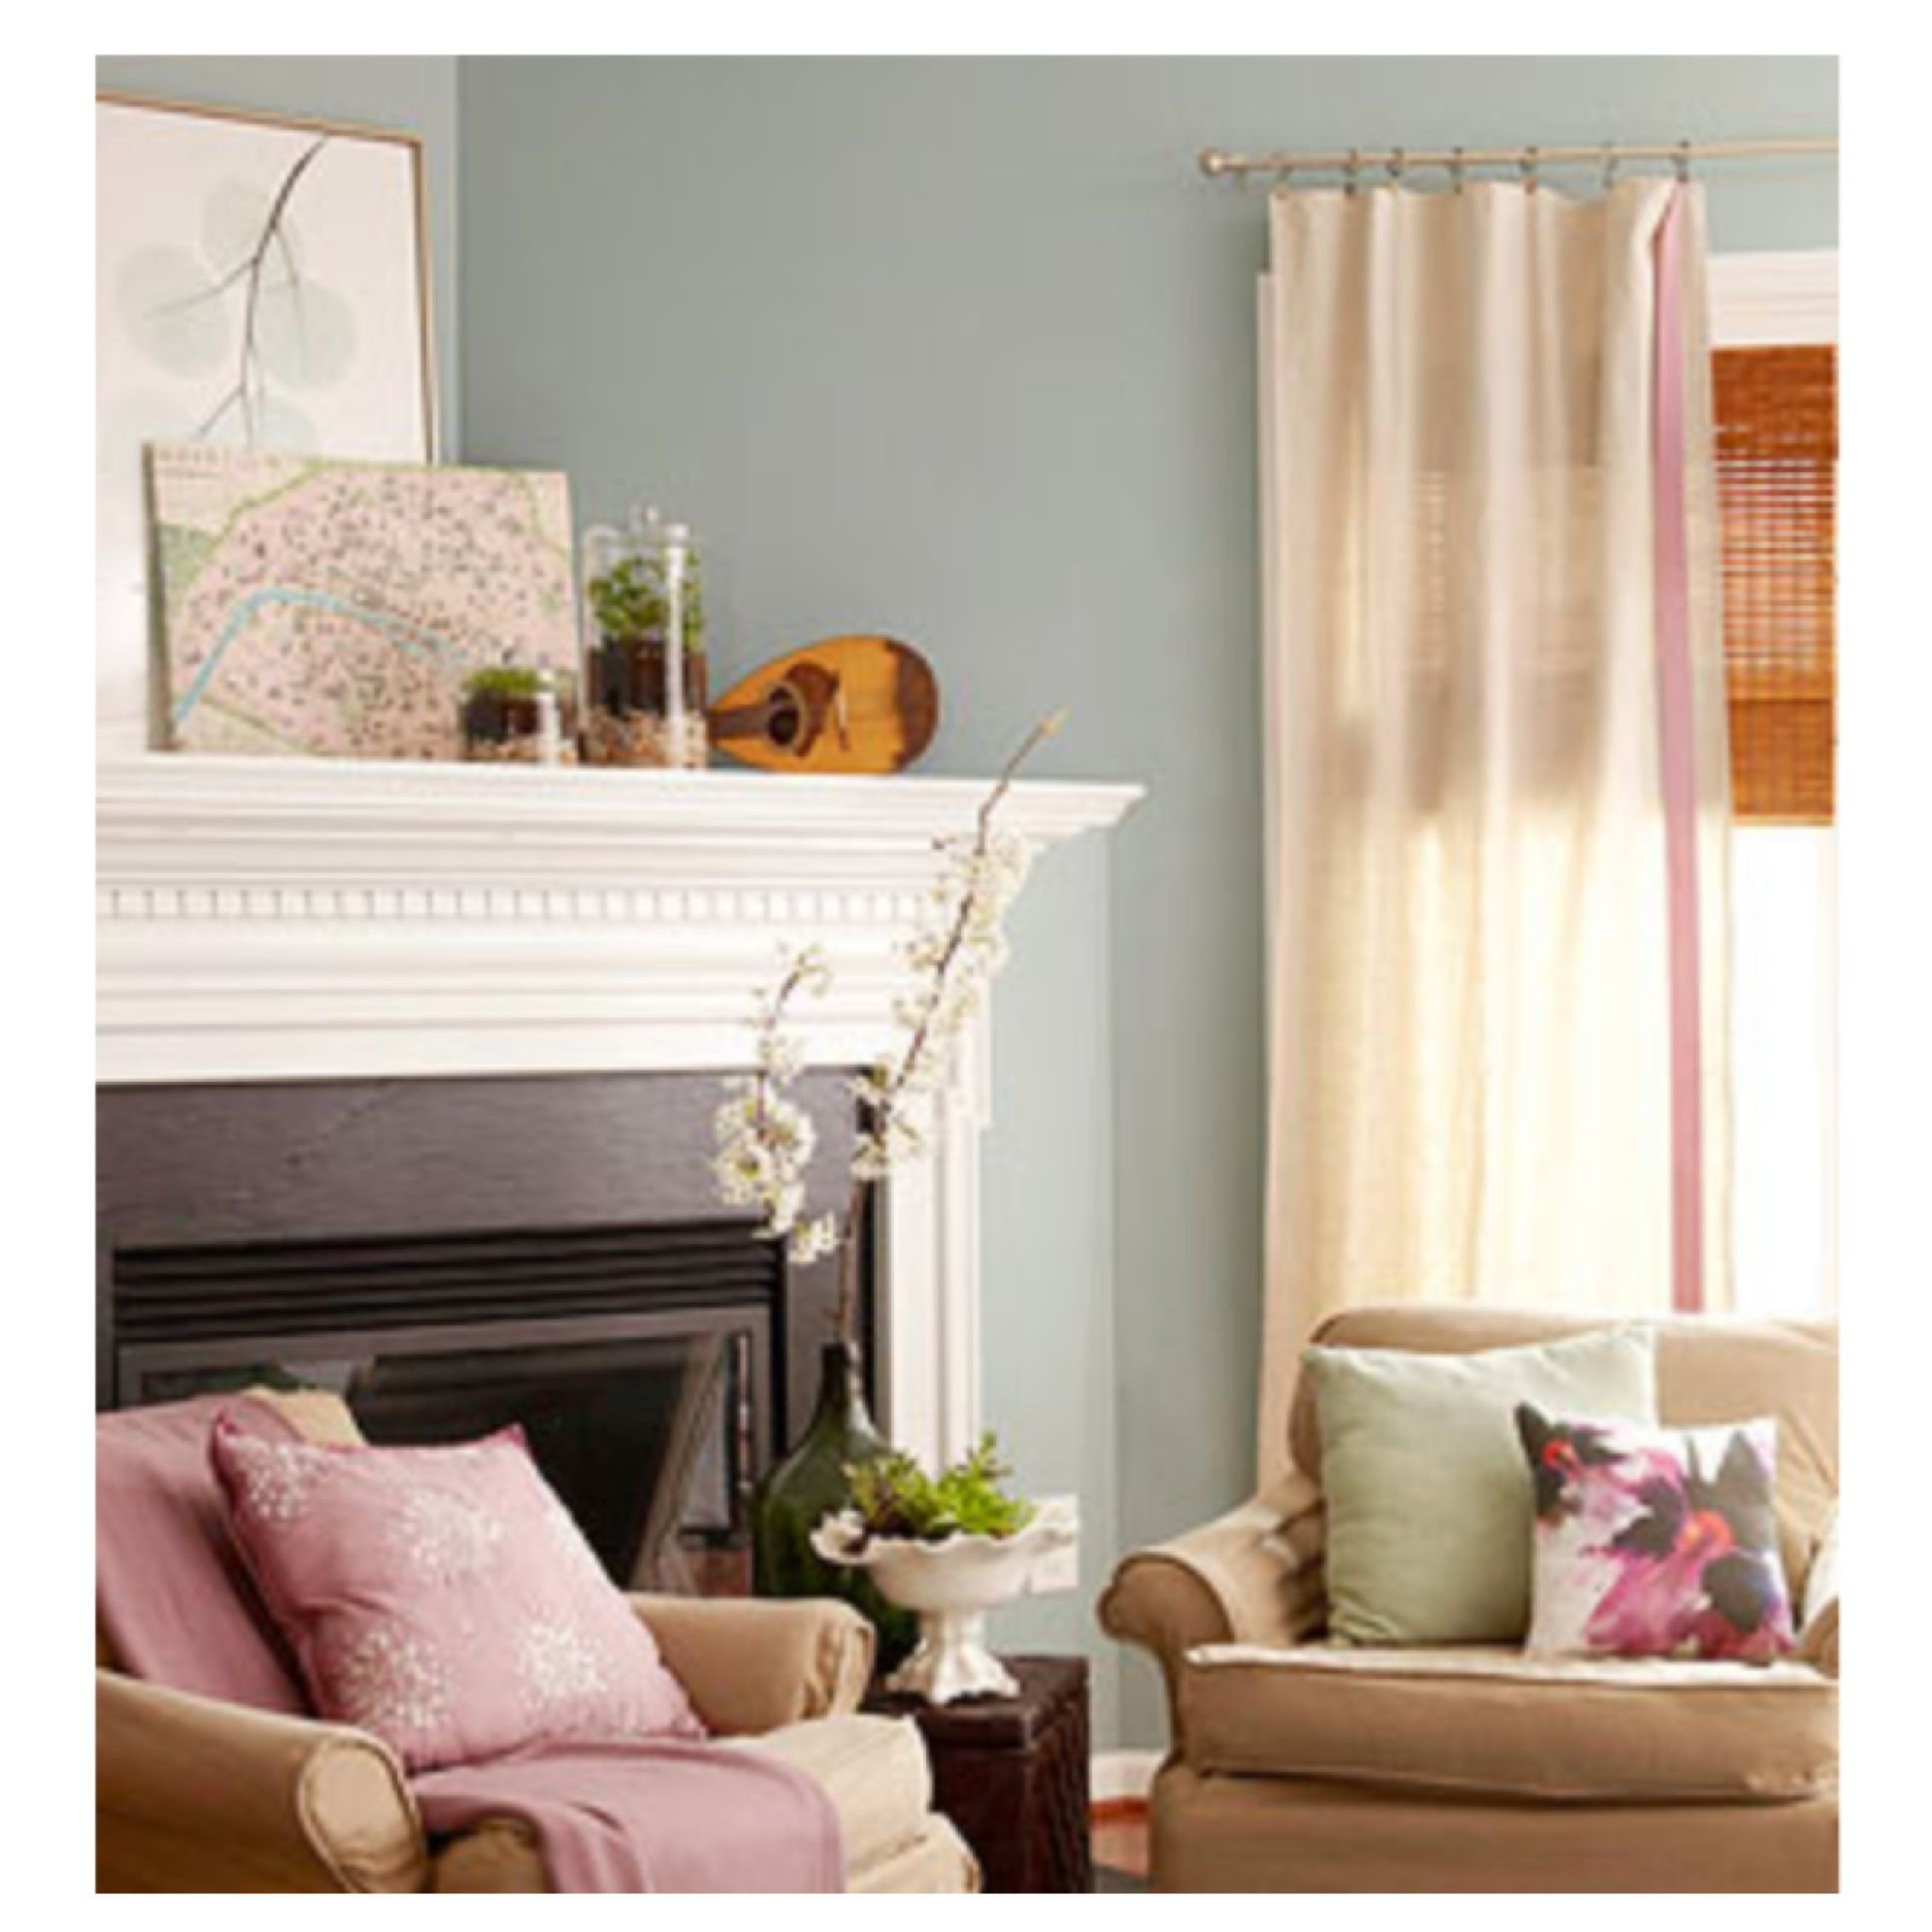 Need Accent Wall Color For Light Blue: Light Slate Blue Walls ....and Love Accent Colors. For